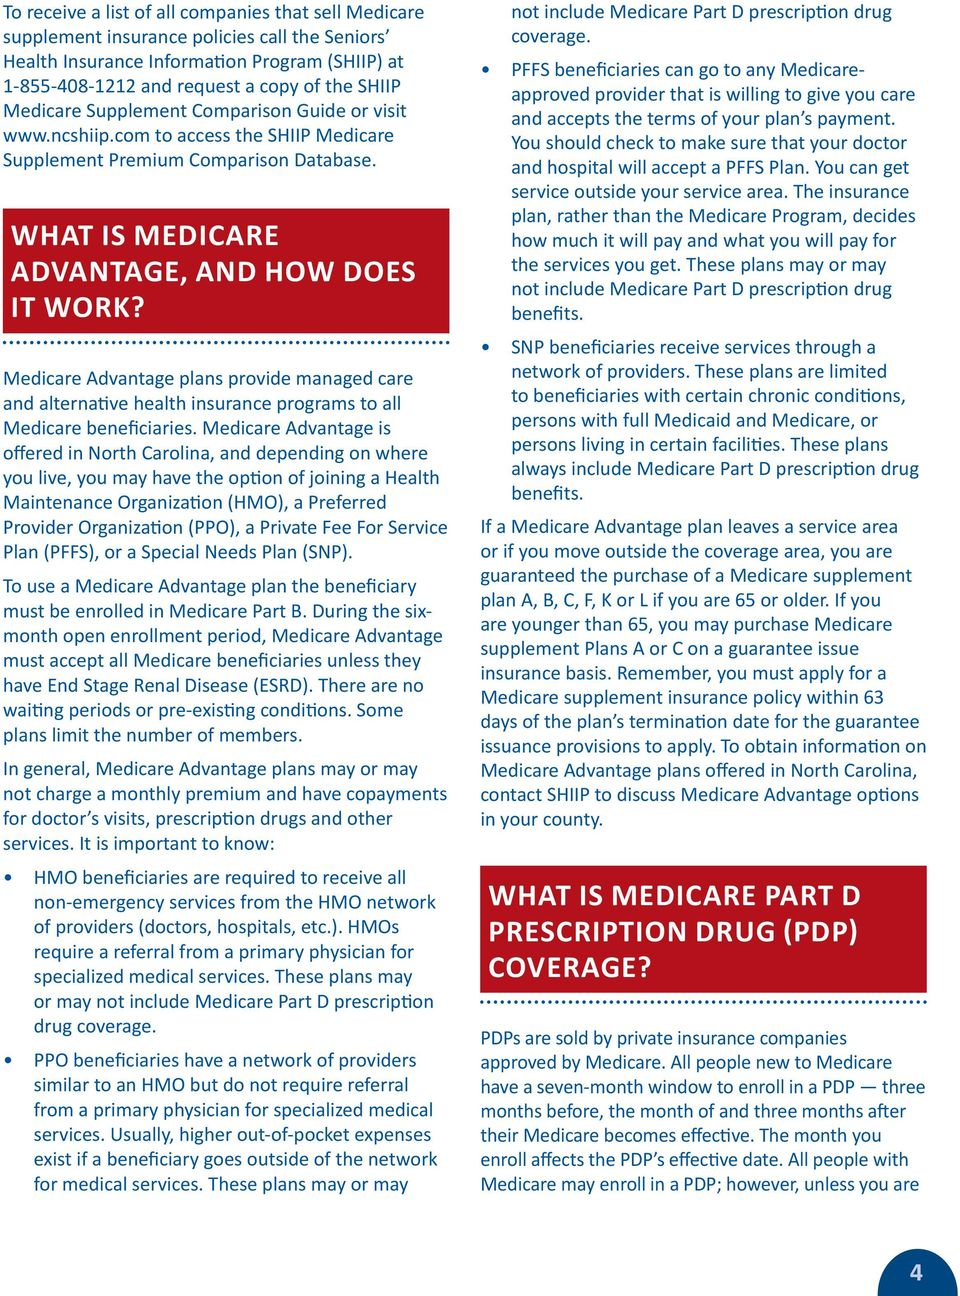 Medicare Advantage plans provide managed care and alternative health insurance programs to all Medicare beneficiaries.